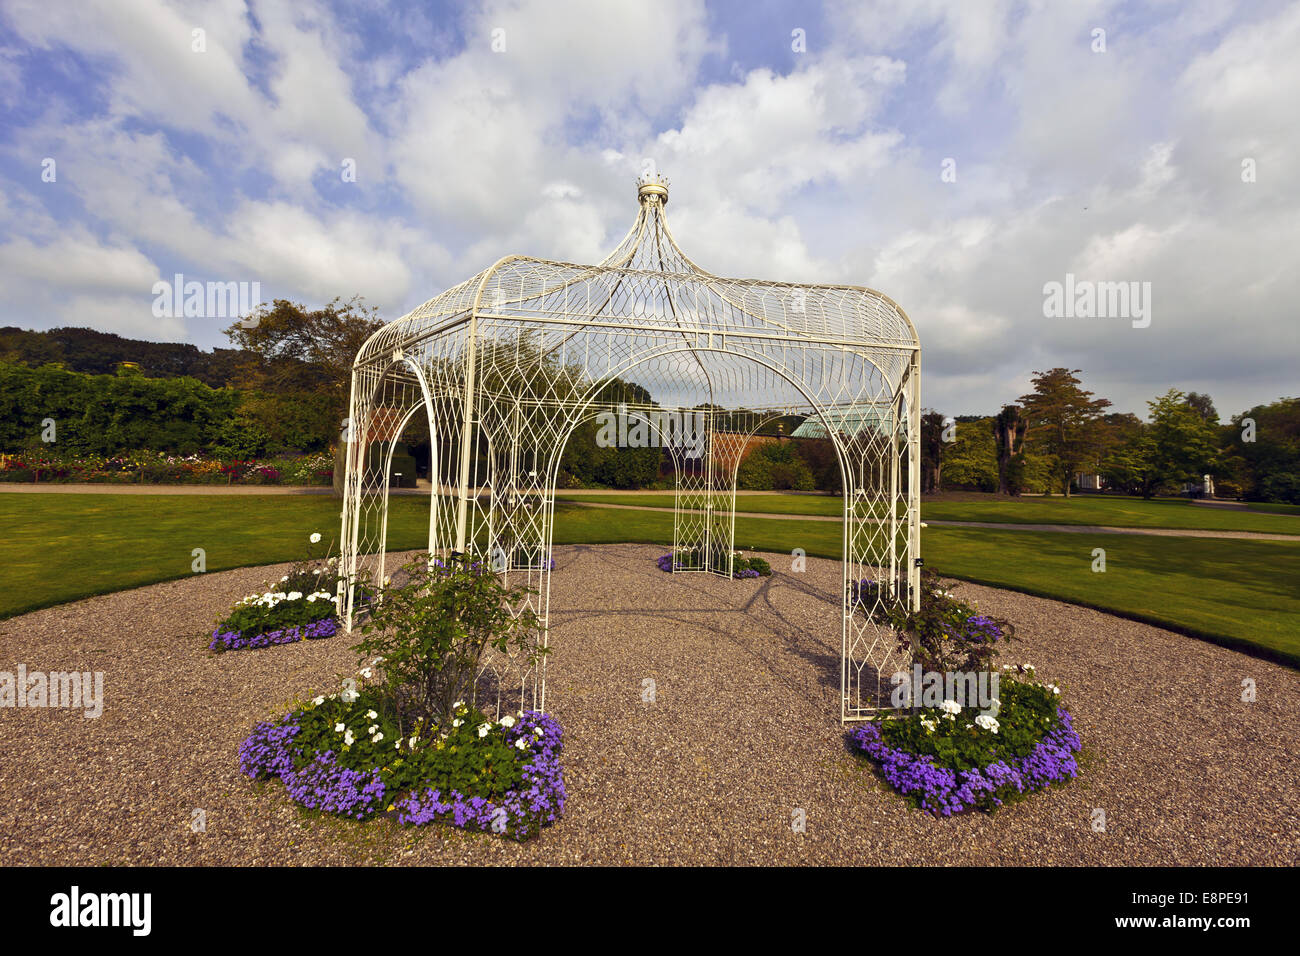 Wrought iron arbor in a landscaped park. - Stock Image